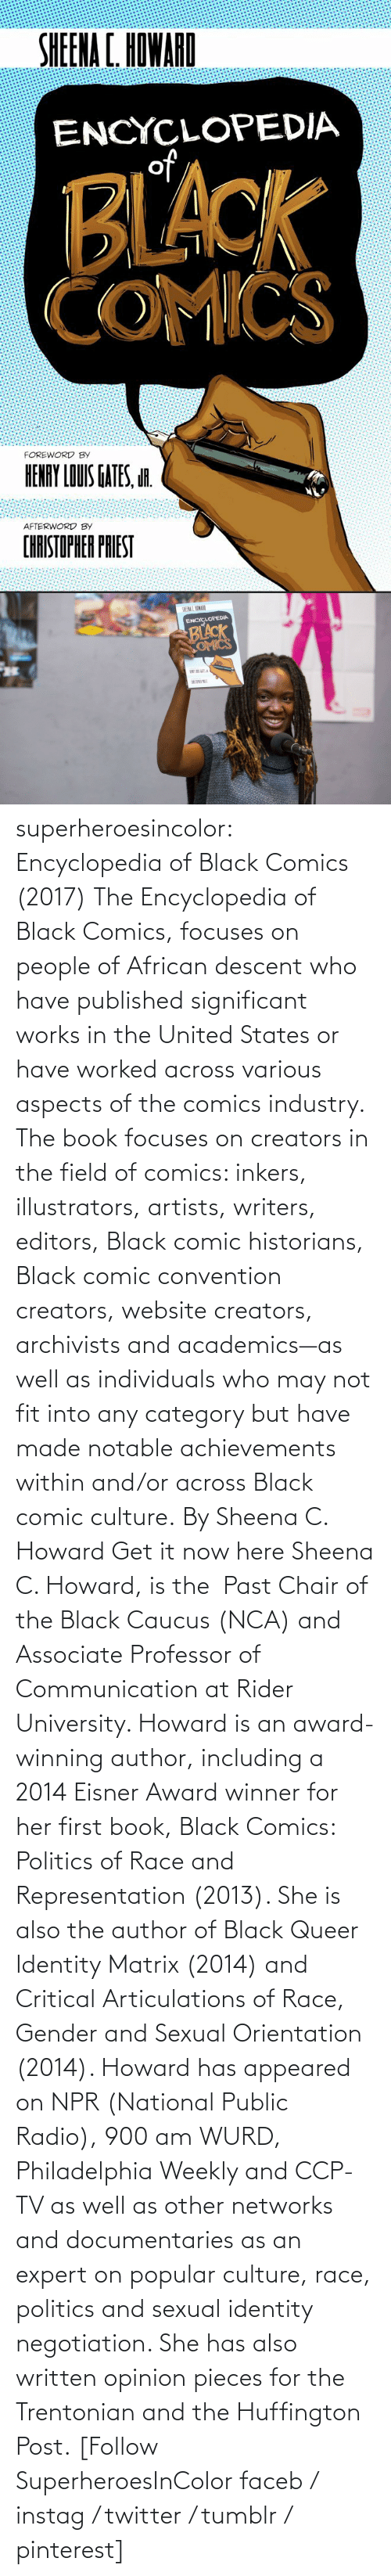 Who Have: superheroesincolor: Encyclopedia of Black Comics (2017) The Encyclopedia of Black Comics, focuses on people of African descent who have published significant works in the United States or have worked across various aspects of the comics industry.  The book focuses on creators in the field of comics: inkers, illustrators, artists, writers, editors, Black comic historians, Black comic convention creators, website creators, archivists and academics—as well as individuals who may not fit into any category but have made notable achievements within and/or across Black comic culture. By Sheena C. Howard Get it now here  Sheena C. Howard, is the  Past Chair of the Black Caucus (NCA) and Associate Professor of Communication at Rider University. Howard is an award-winning author, including a 2014 Eisner Award winner for her first book, Black Comics: Politics of Race and Representation (2013). She is also the author of Black Queer Identity Matrix (2014) and Critical Articulations of Race, Gender and Sexual Orientation (2014). Howard has appeared on NPR (National Public Radio), 900 am WURD, Philadelphia Weekly and CCP-TV as well as other networks and documentaries as an expert on popular culture, race, politics and sexual identity negotiation. She has also written opinion pieces for the Trentonian and the Huffington Post.   [Follow SuperheroesInColor faceb / instag / twitter / tumblr / pinterest]